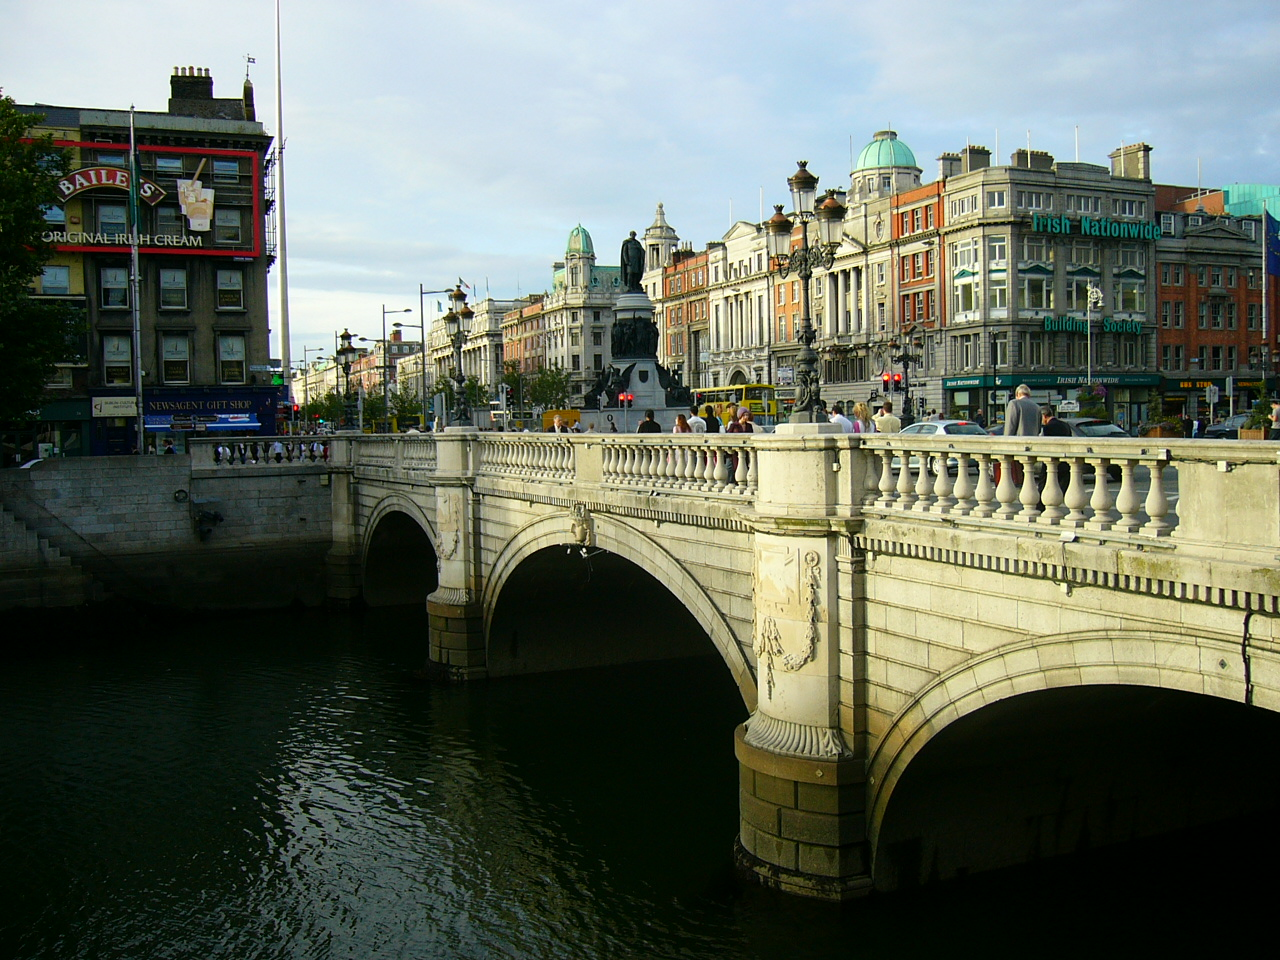 Dublin, Ireland (photo credit: CN/flickr)